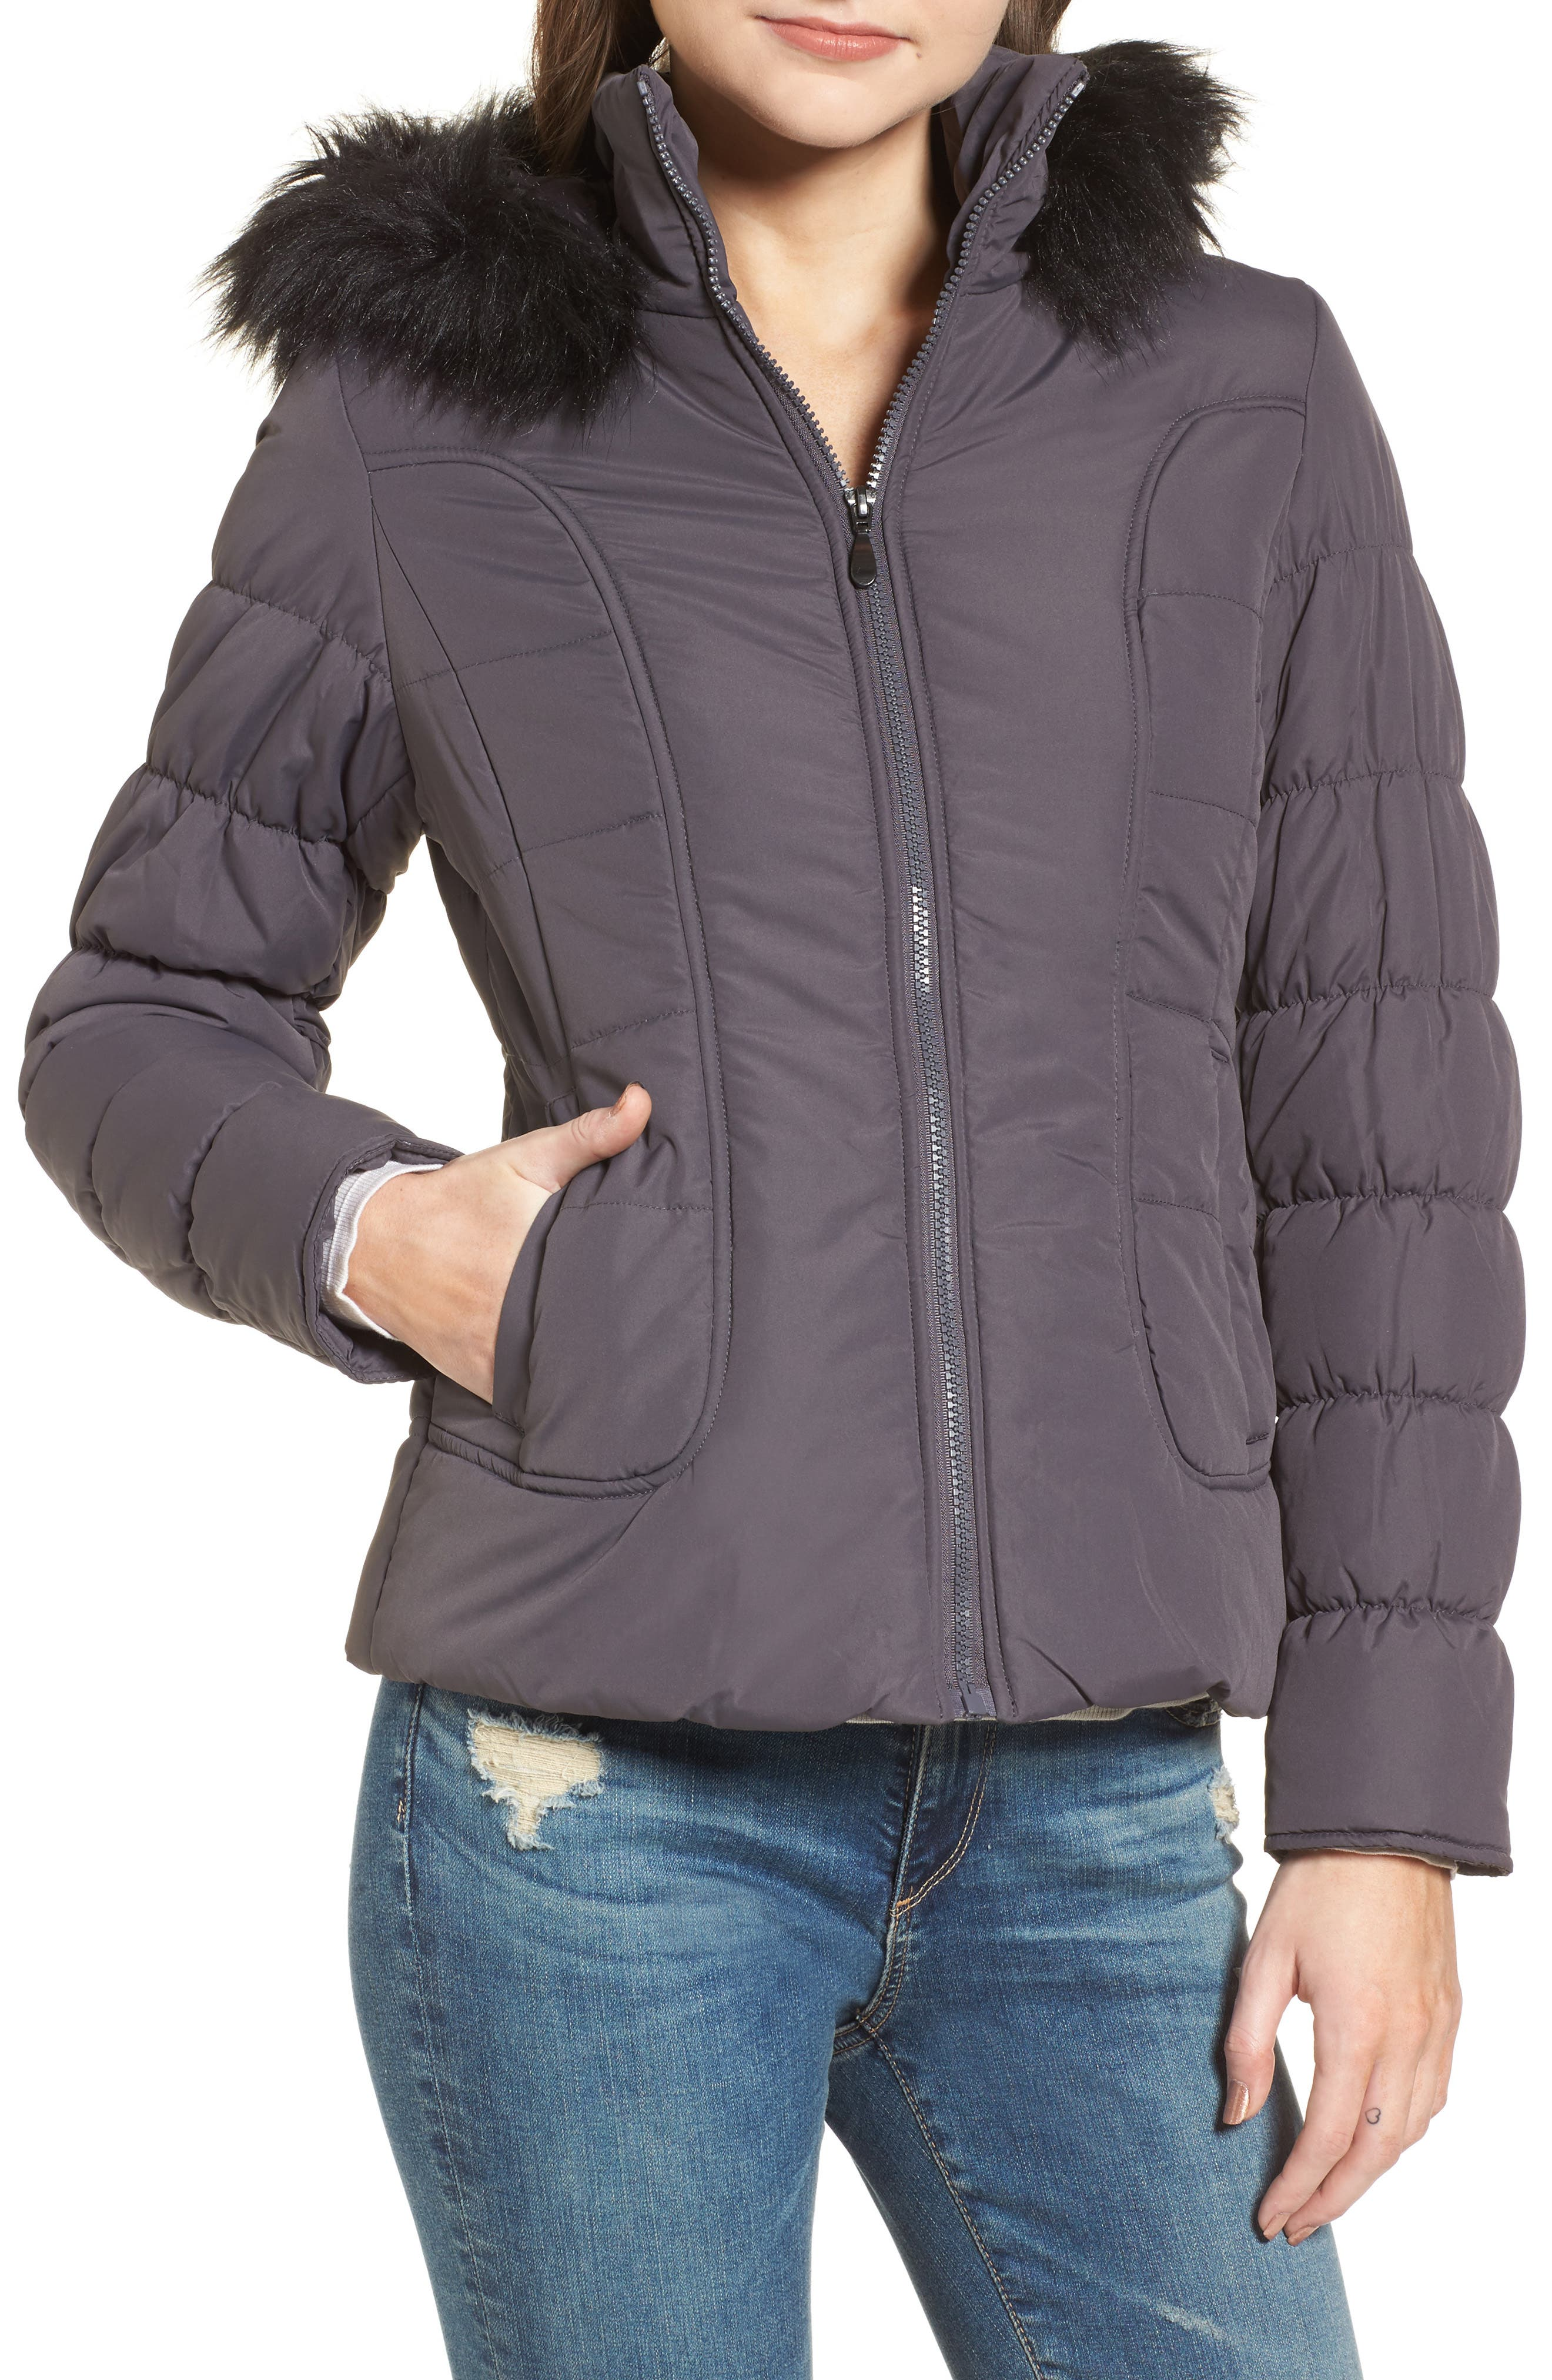 Quilted Jacket with Faux Fur Collar,                             Alternate thumbnail 4, color,                             Concrete